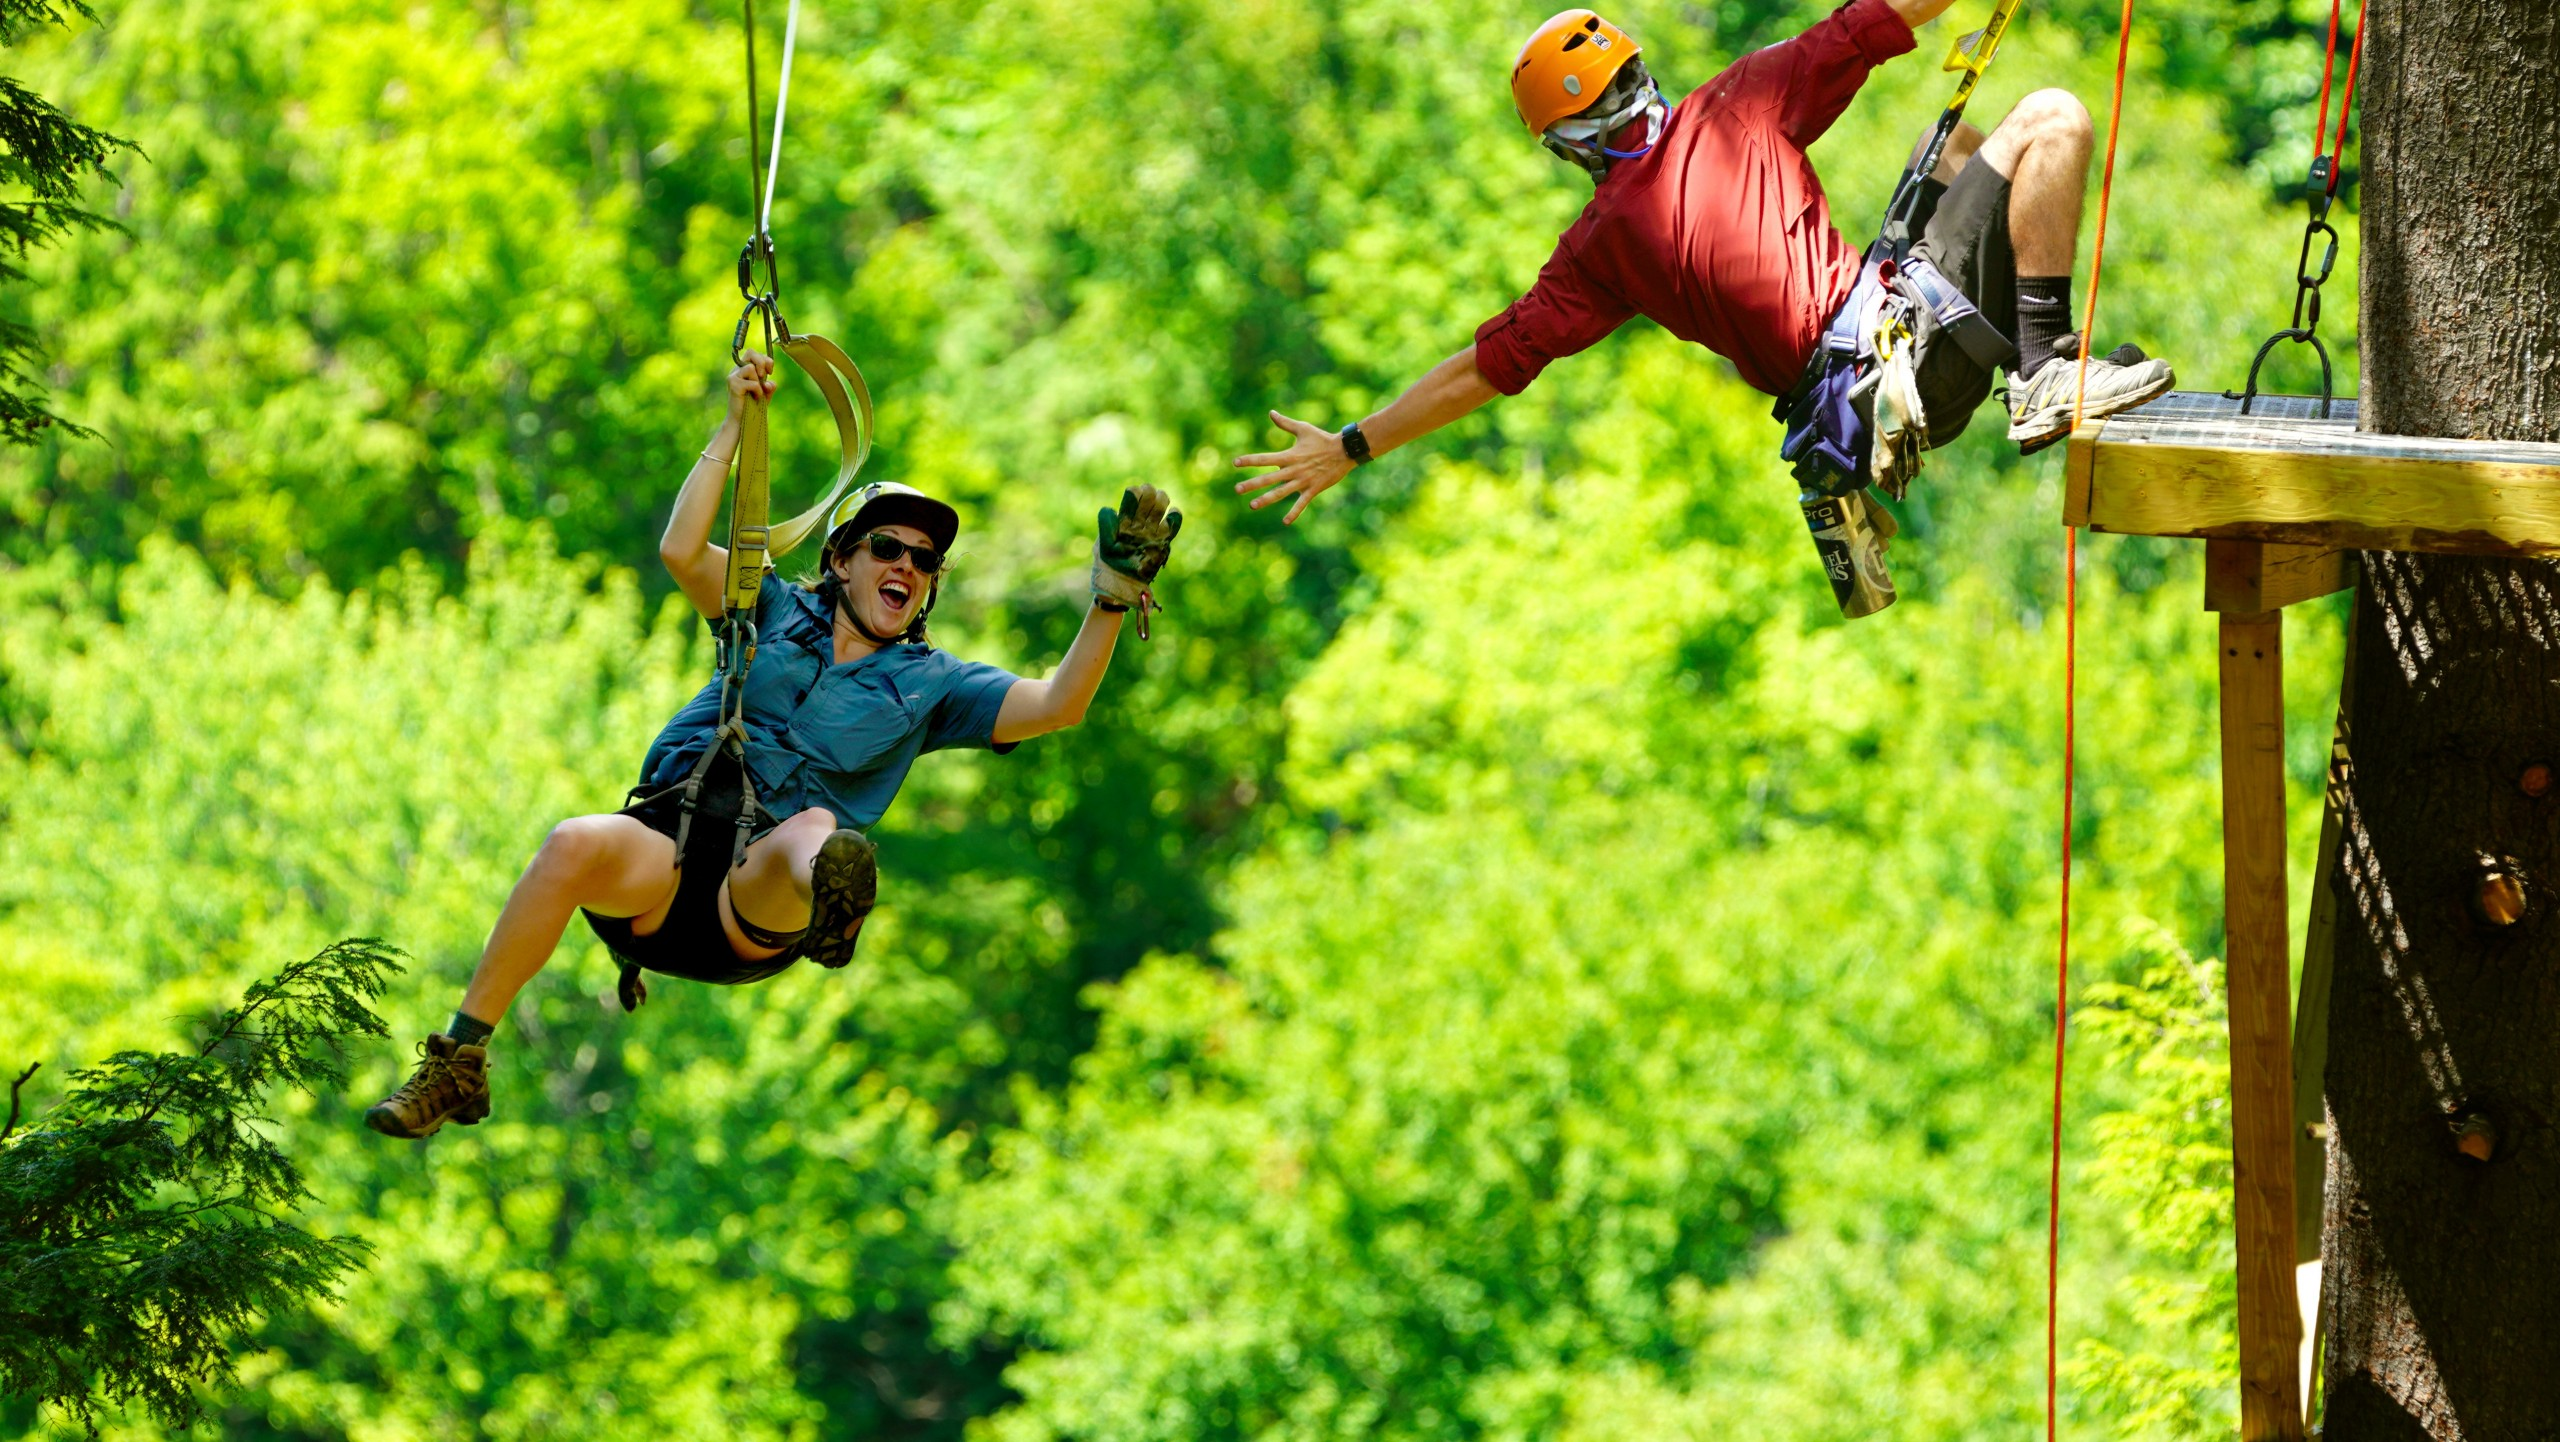 High Fives for Ziplining